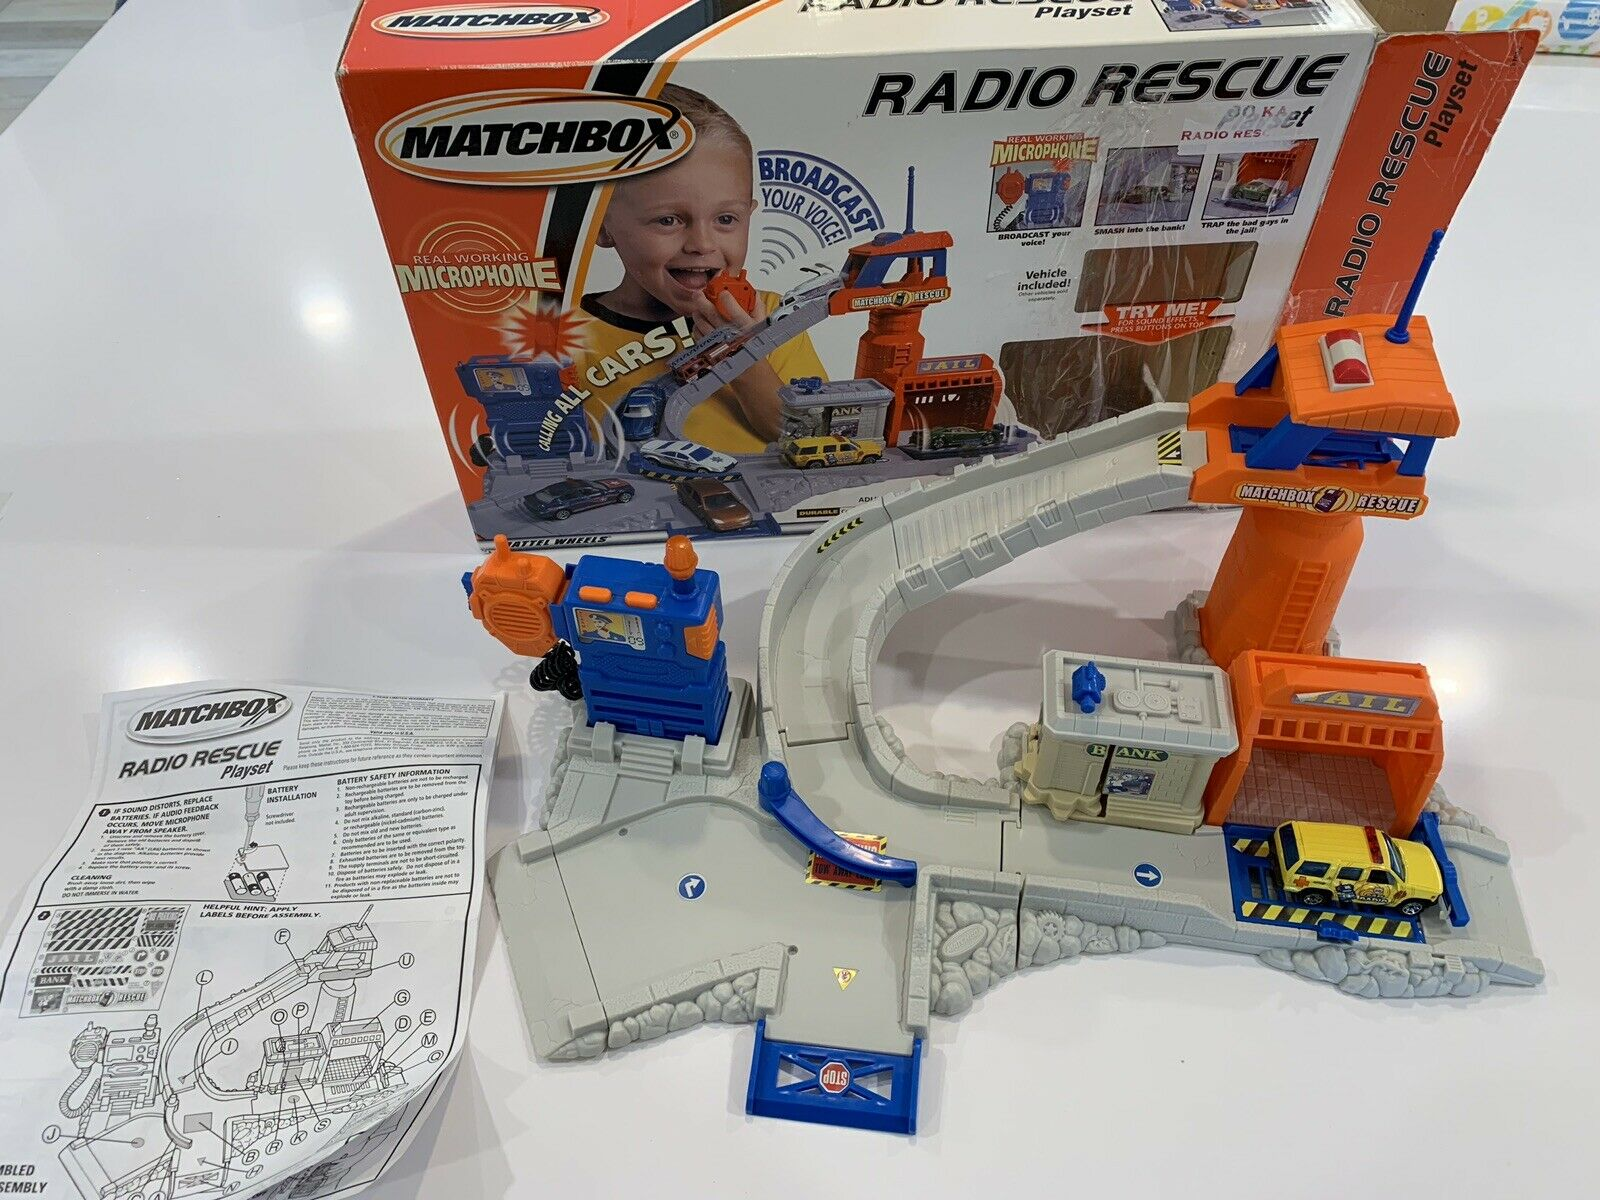 MATCHBOX Radio Rescue Playset véhicule inclus 2001 complet